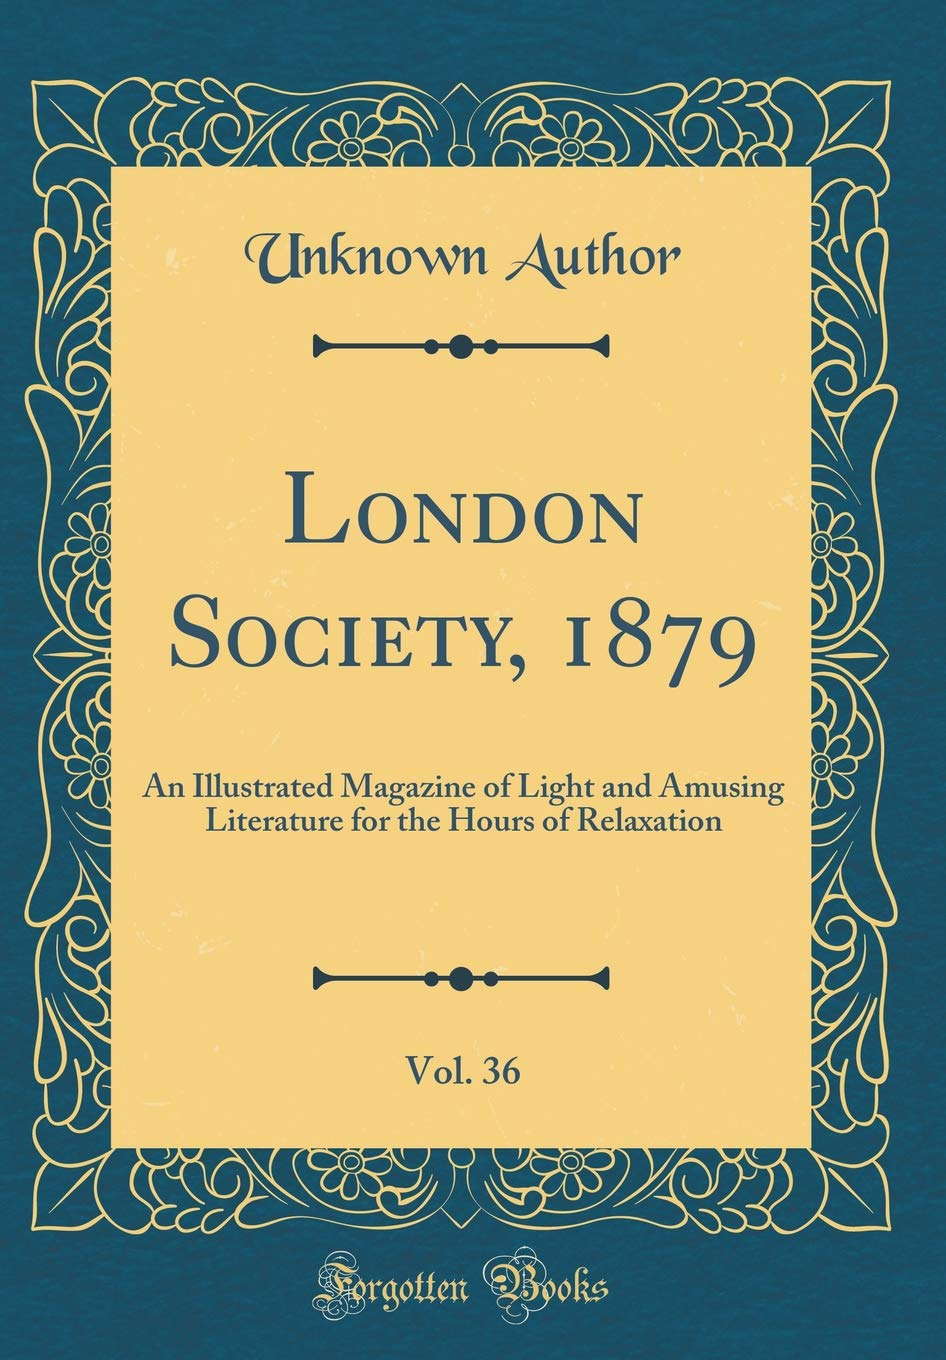 London Society, 1879, Vol. 36: An Illustrated Magazine of Light and Amusing Literature for the Hours of Relaxation (Classic Reprint) ebook